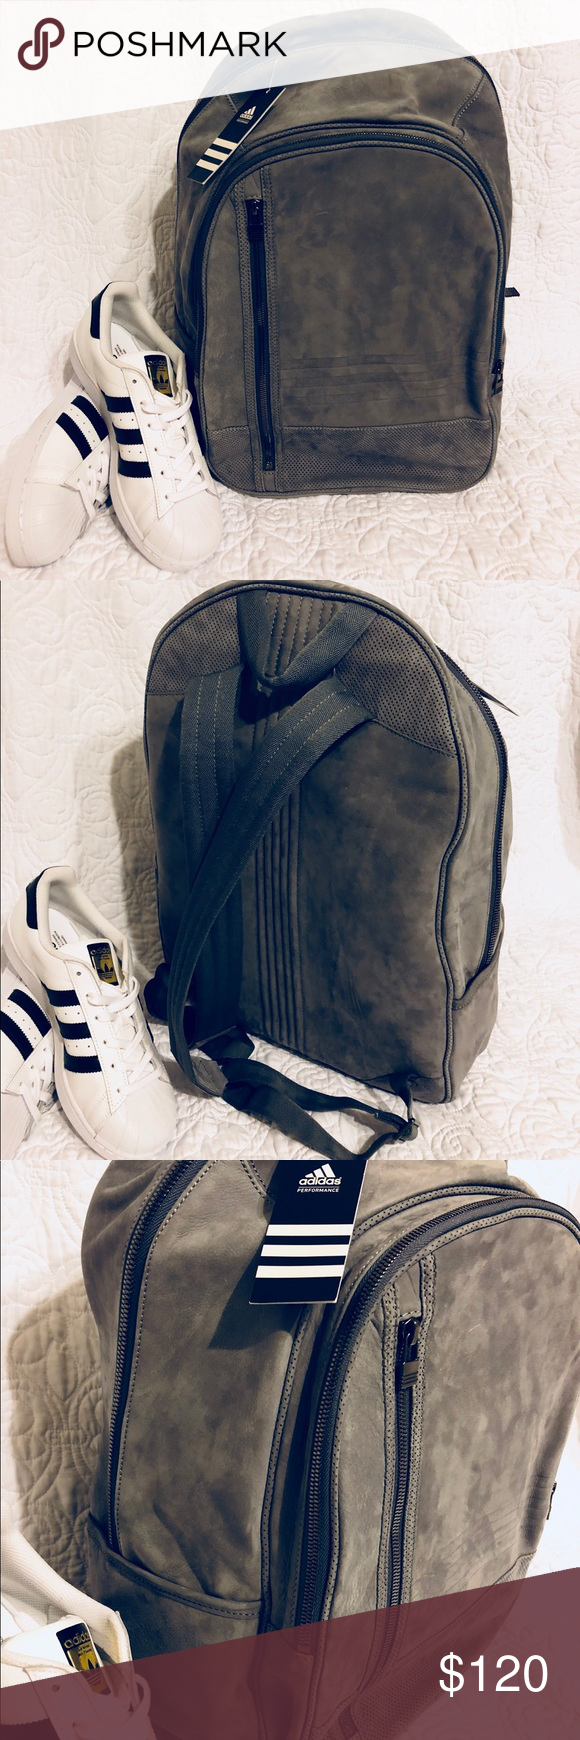 dbb92d67ef2f Super Rare Leather Backpack Super rare backpack by adidas. Comes new with  tag still attached